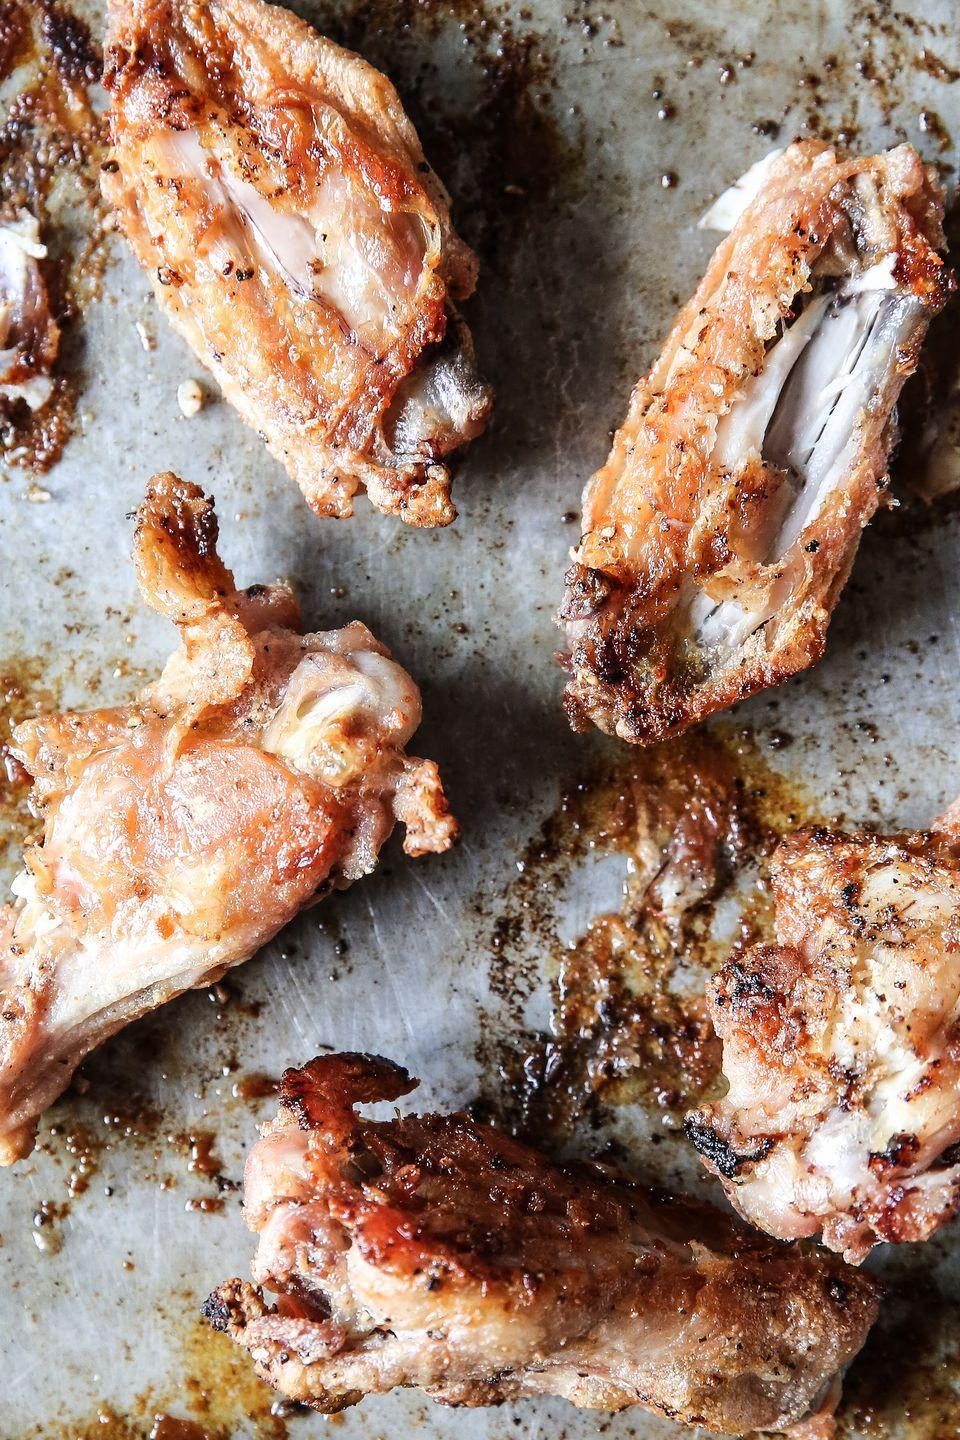 """<p>It's the easiest way to make wings. Bar none.</p><p>Get the recipe from <a href=""""https://www.redbookmag.com/cooking/recipe-ideas/recipes/a53411/easy-oven-baked-chicken-wings/"""" rel=""""nofollow noopener"""" target=""""_blank"""" data-ylk=""""slk:Delish"""" class=""""link rapid-noclick-resp"""">Delish</a>.</p>"""